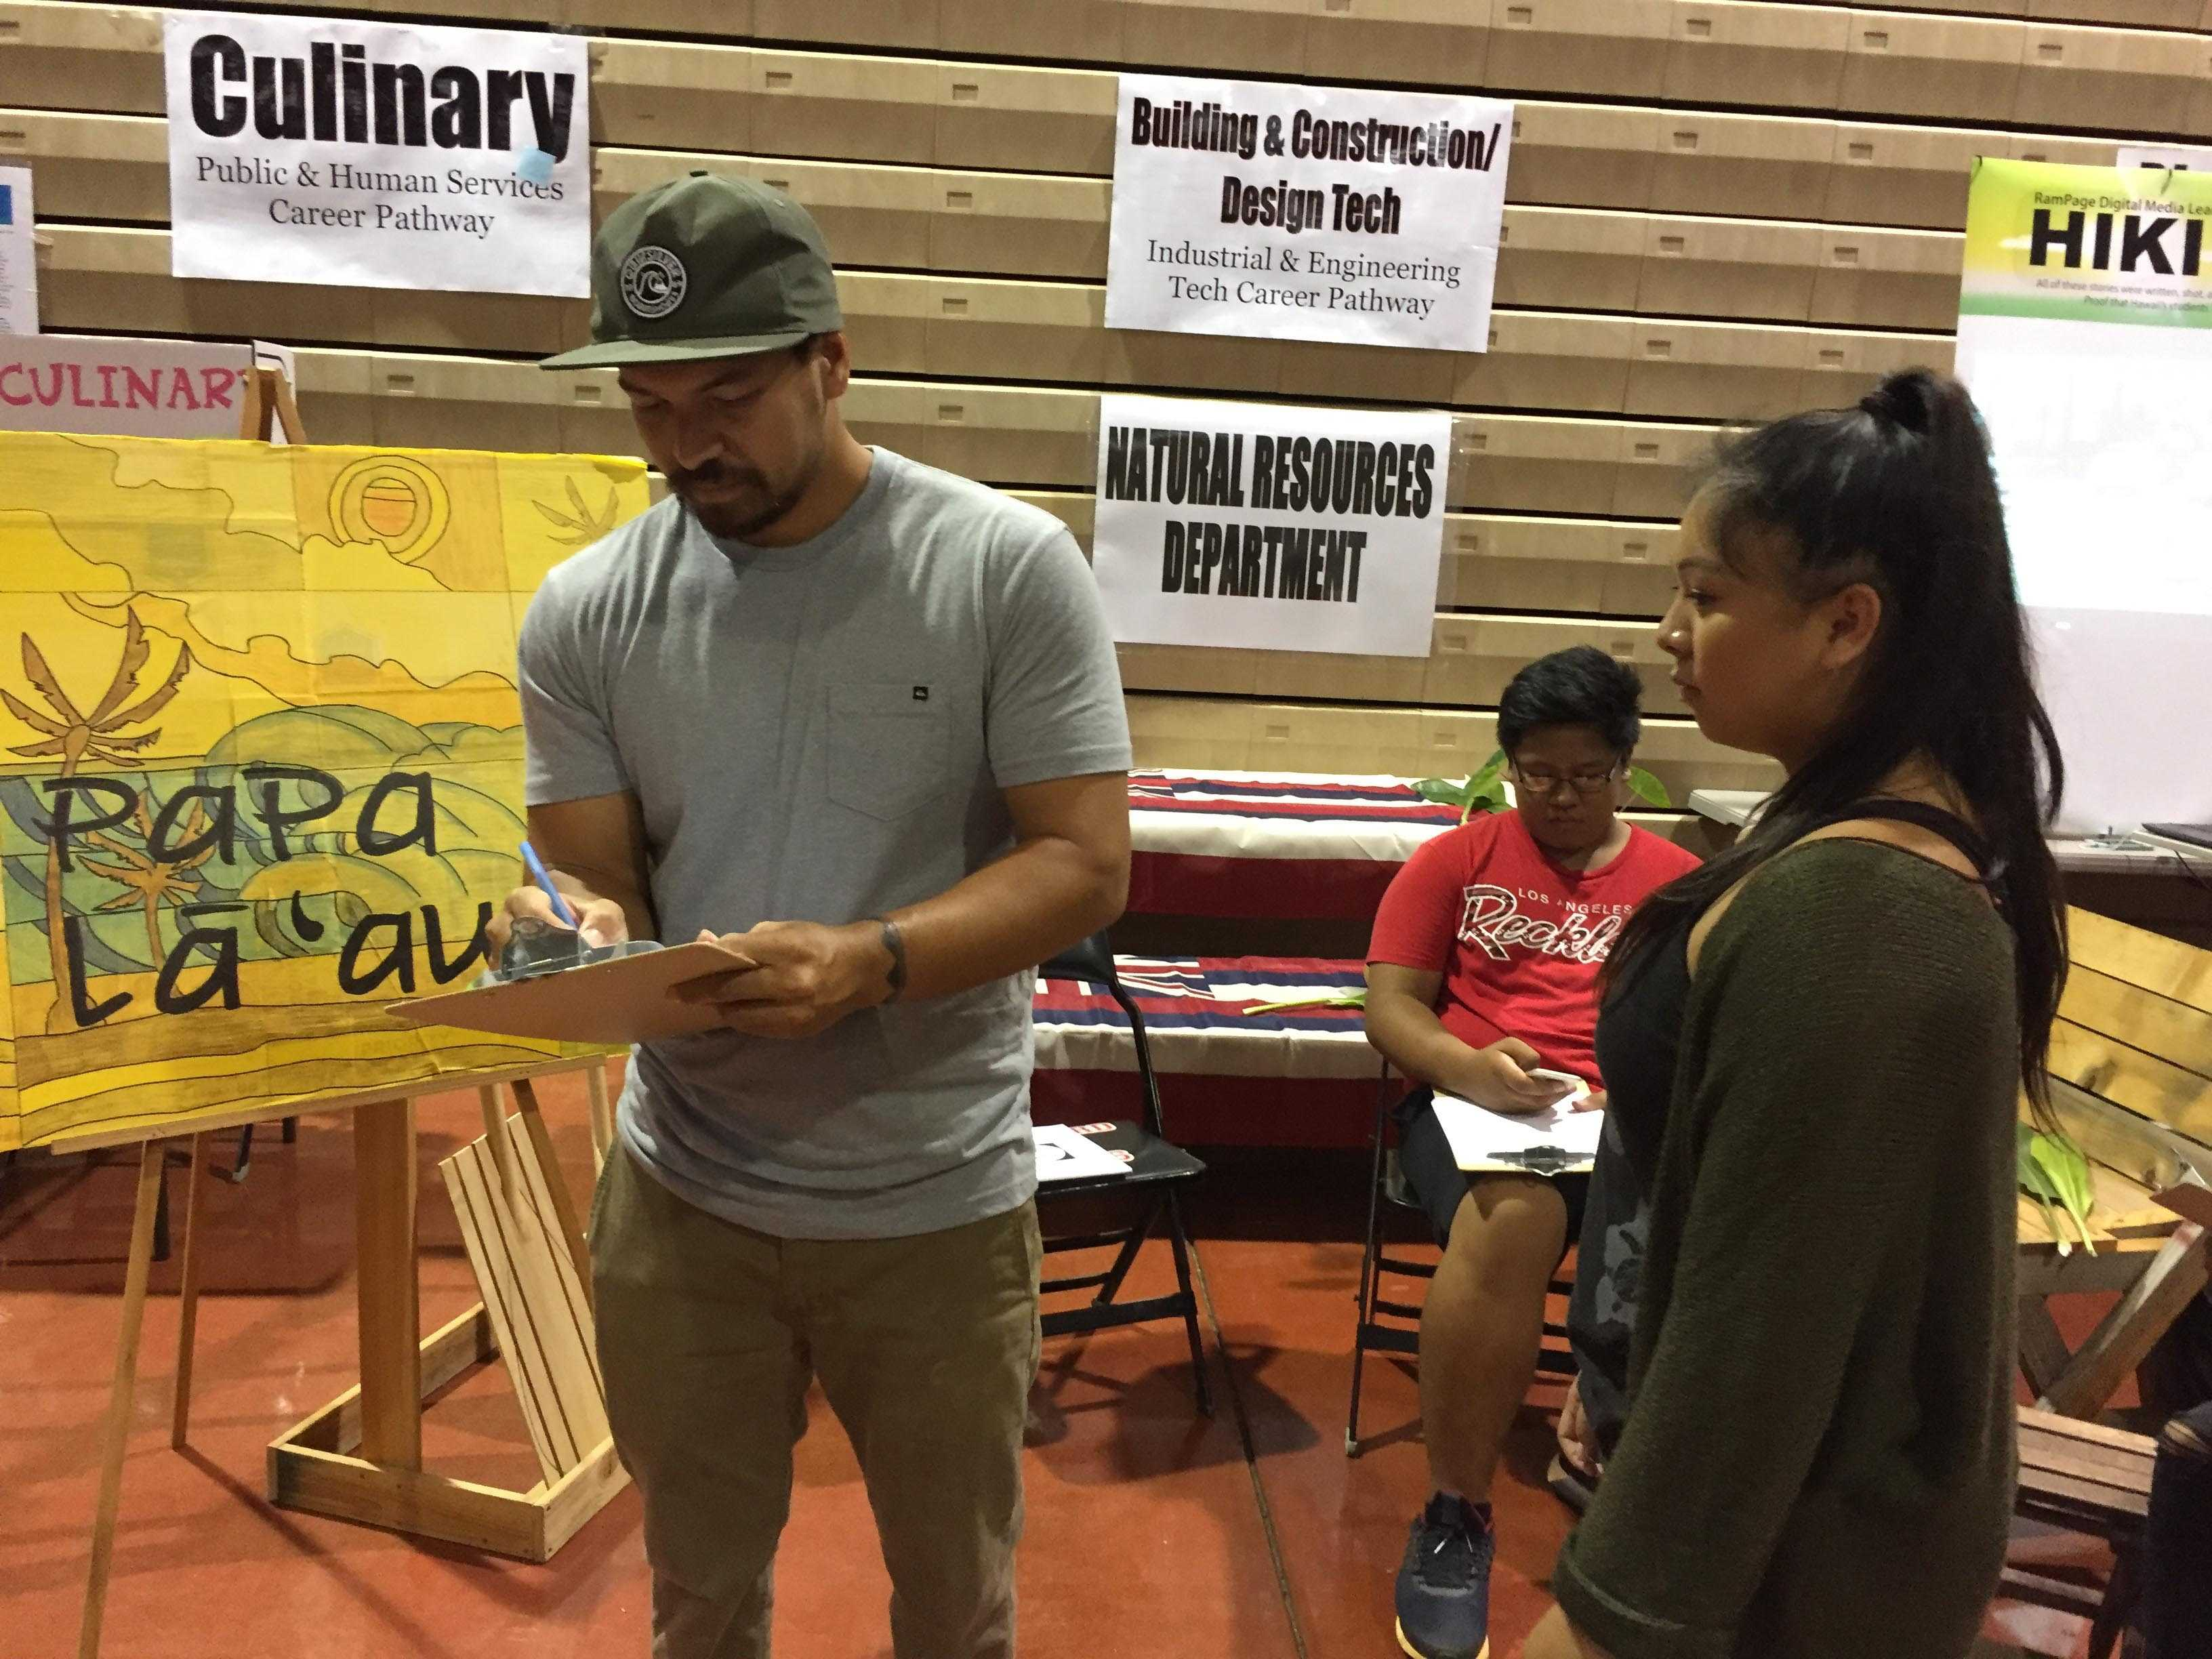 Career Technical Education teacher Kapuni Patcho distributes registration stickers for his Papa La'au course at Project ARIES' Curriculum Fair. Over 20 departments and programs promoted their courses, and addressed students and their parents' questions at the evening fair. The fair is part of a two-week schoolwide event that also features a Career and College Fair for students